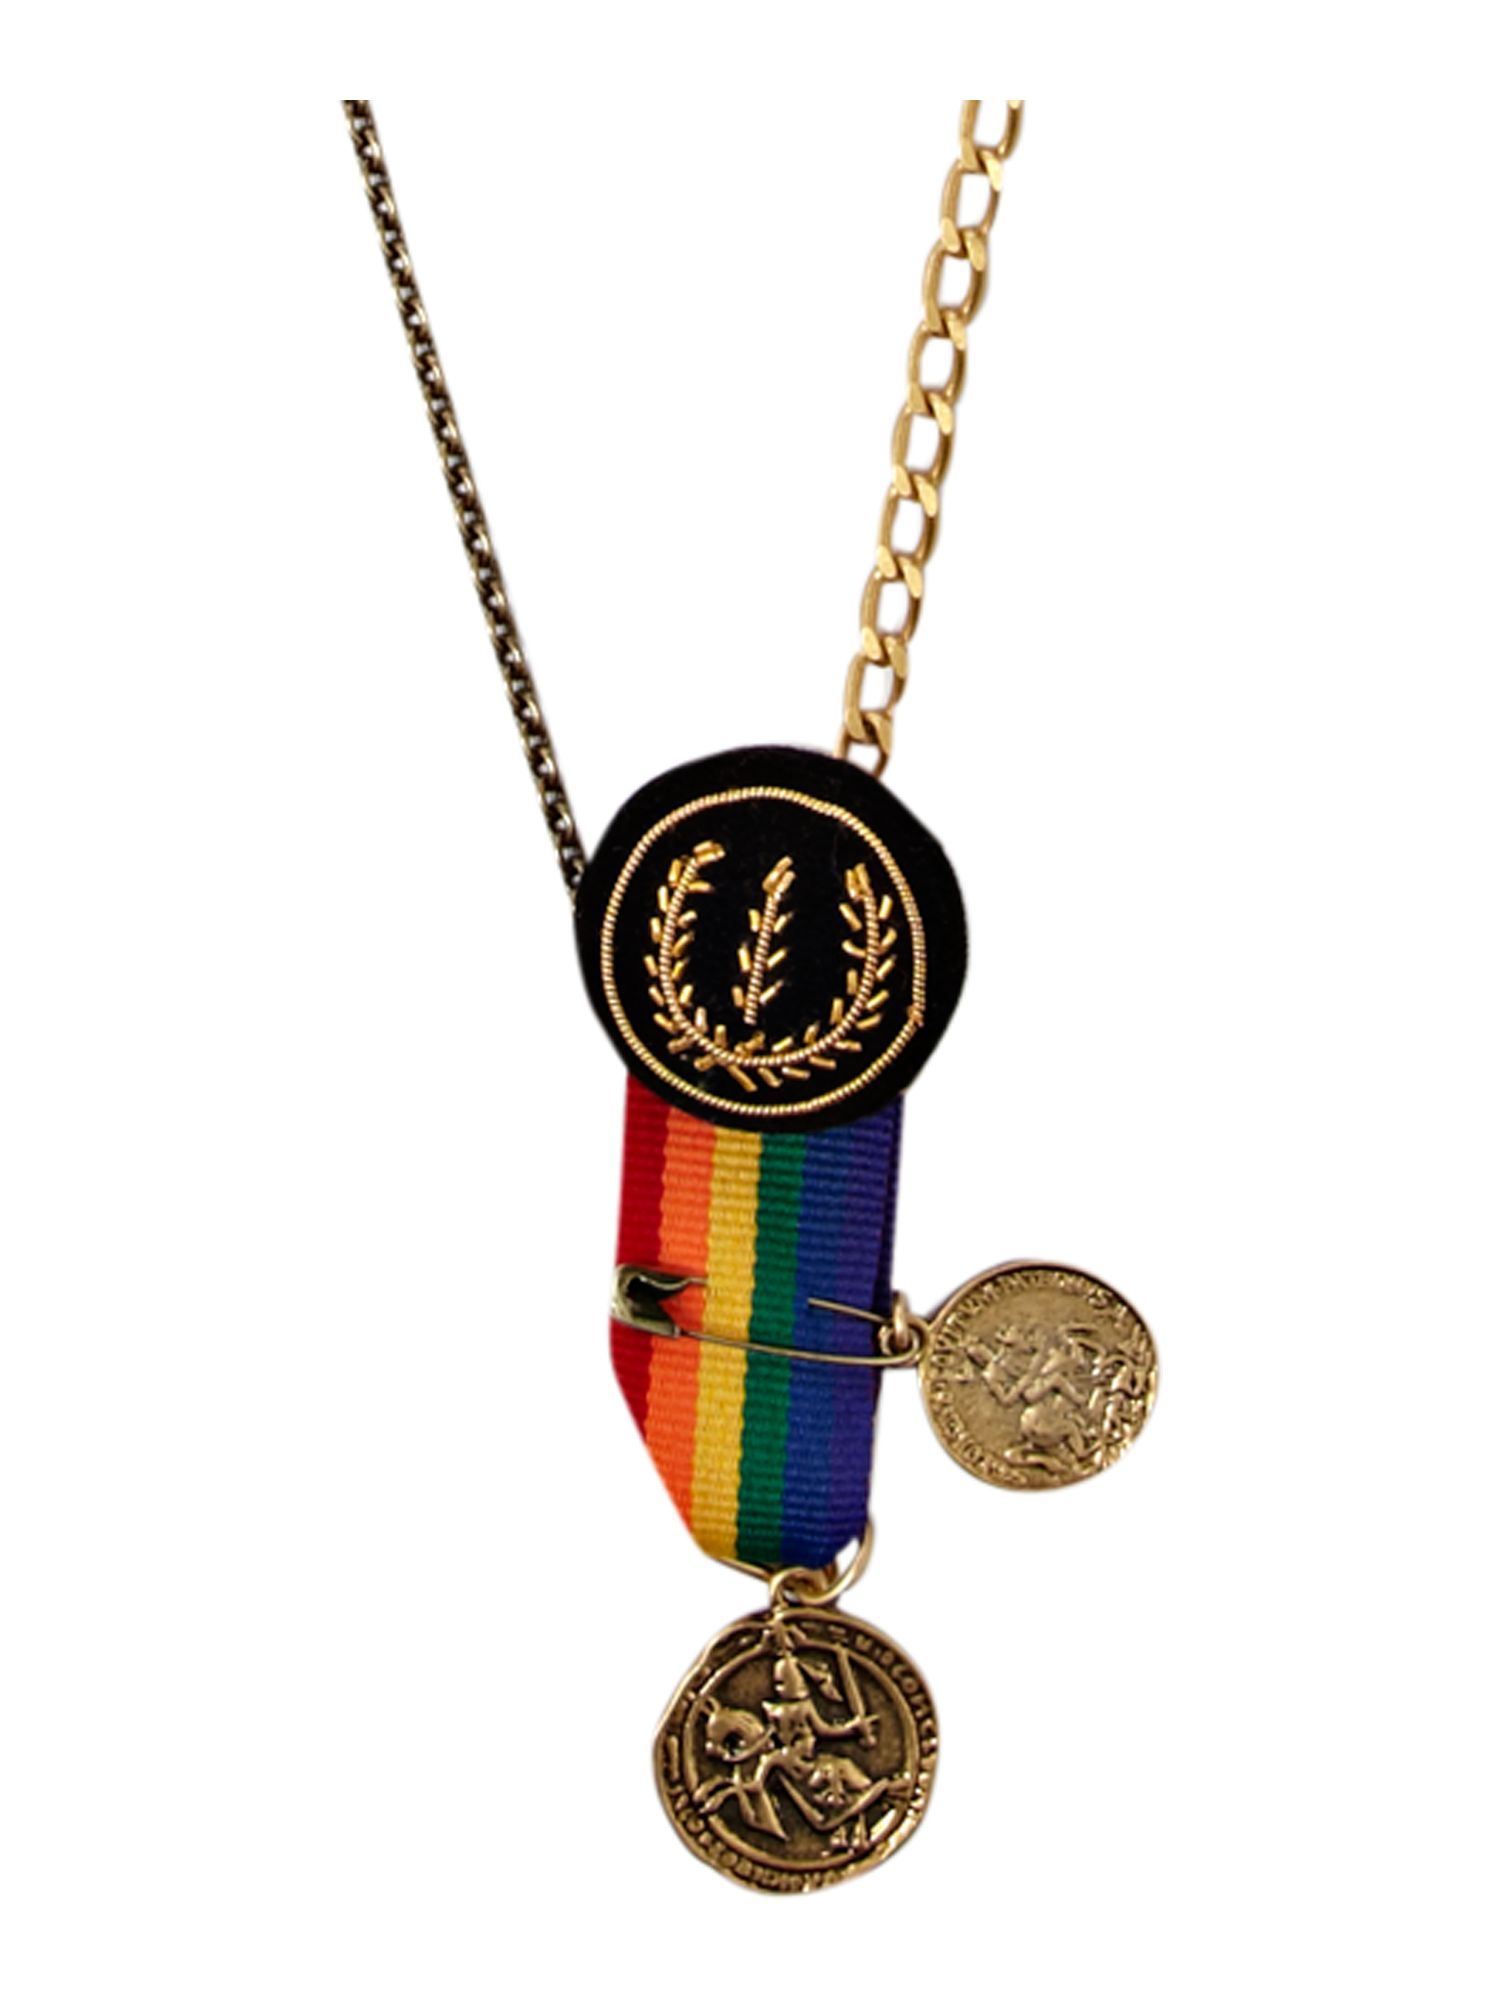 Disney Couture Medal themed necklace